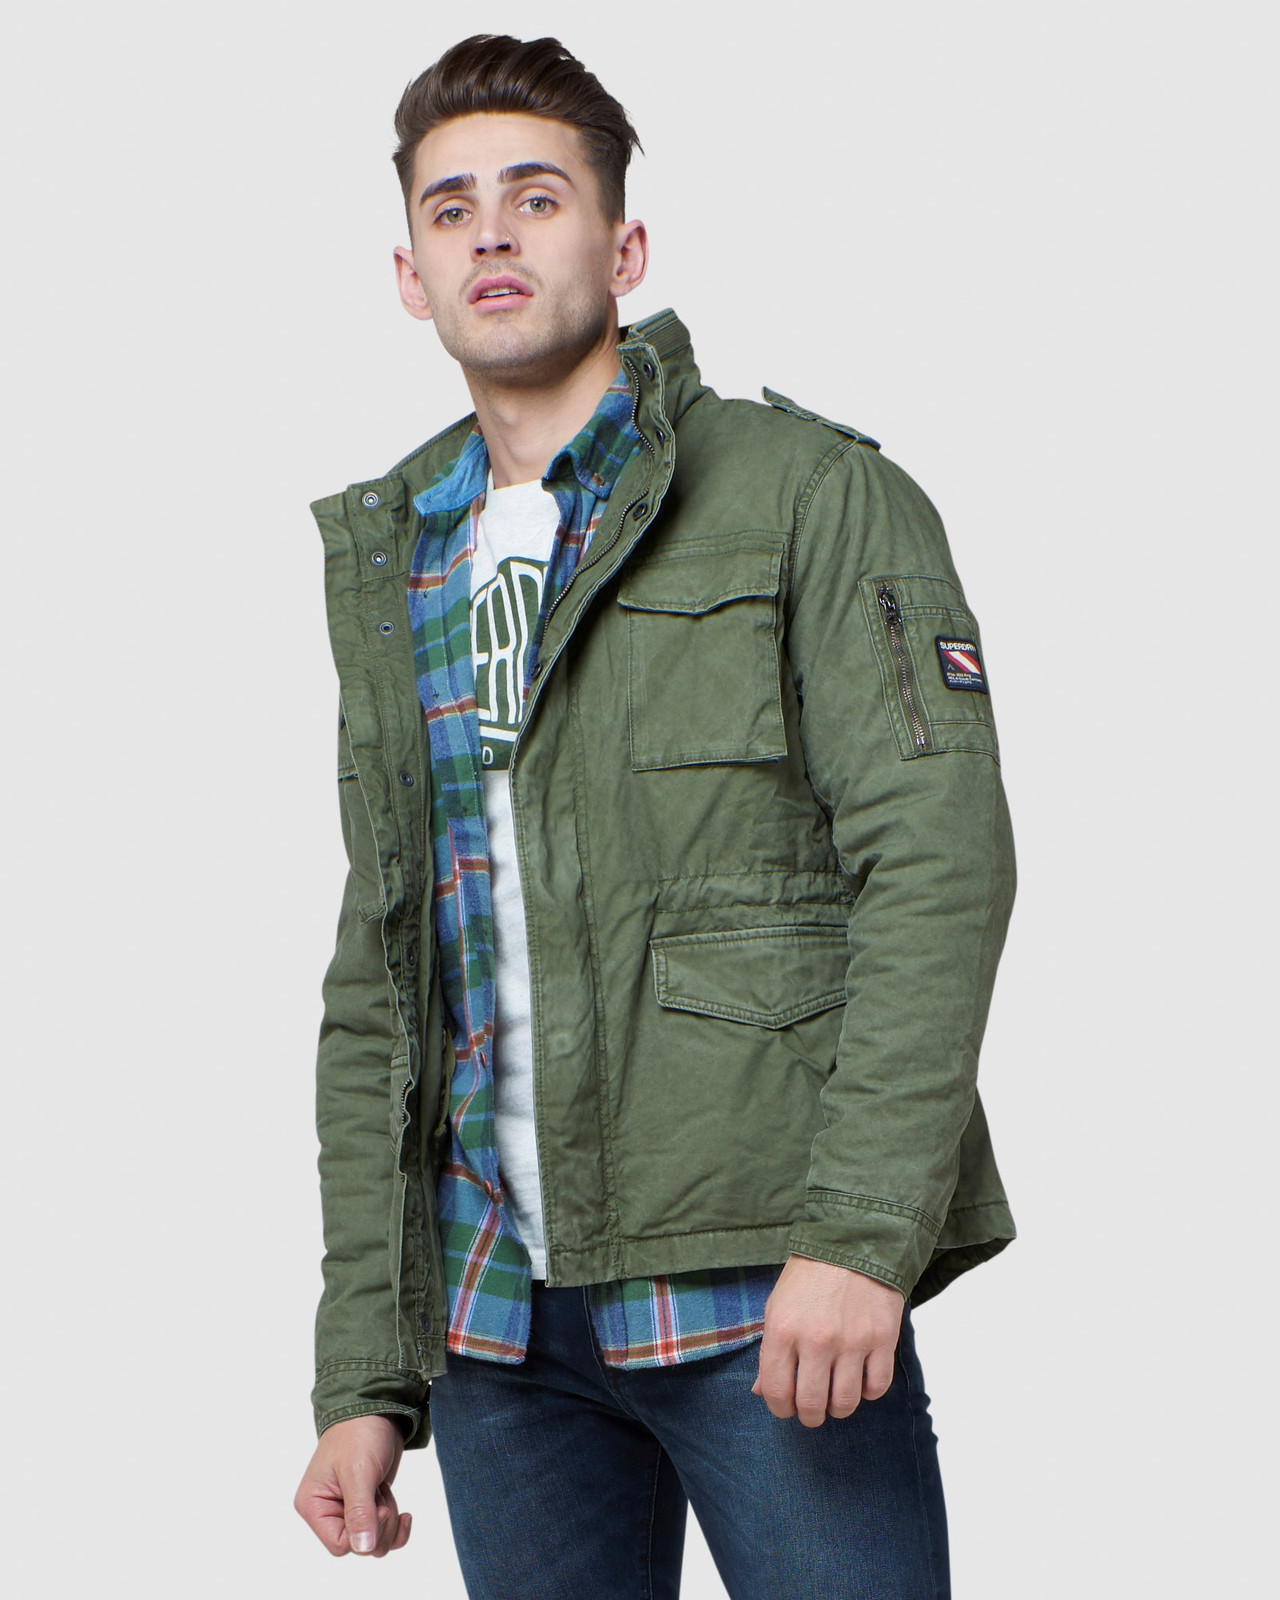 Superdry Mens CLASSIC ROOKIE JACKET Green Military Jackets 0